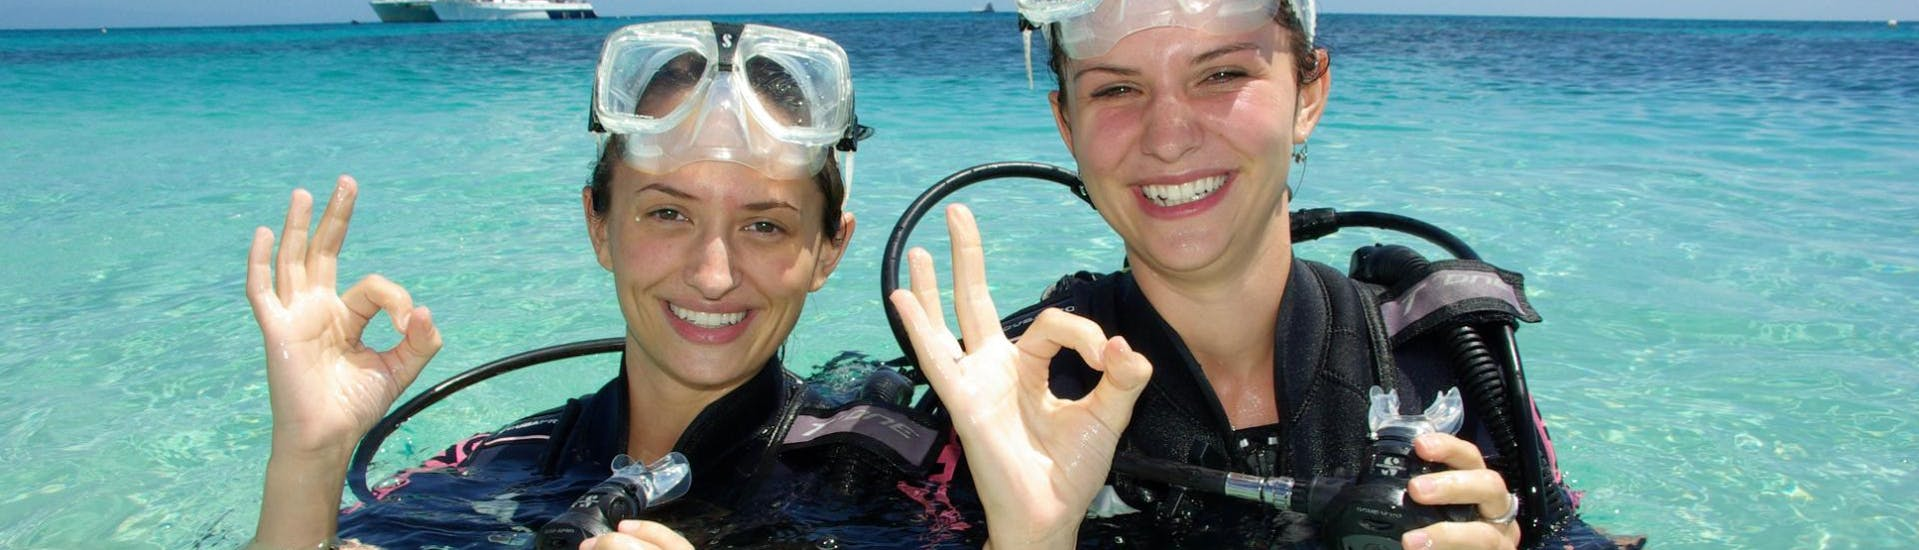 During the Discover Scuba Diving in the Great Barrier Reef from Cairns, two friends are feeling happy after their first dive under the guidance of a certified guide from Ocean Spirit Cruises.